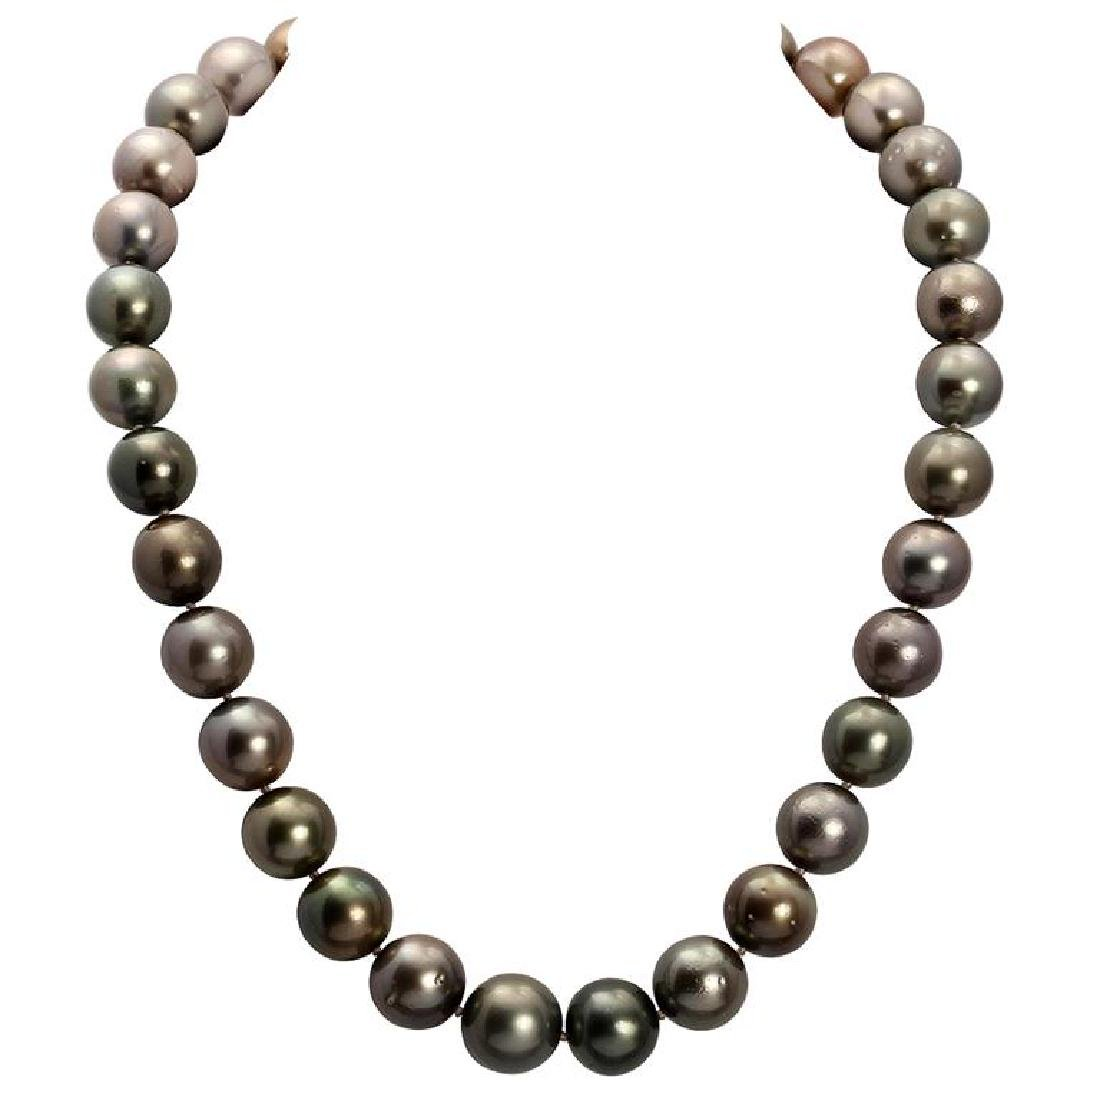 12-14.5mm Natural South Sea Pearl Necklace